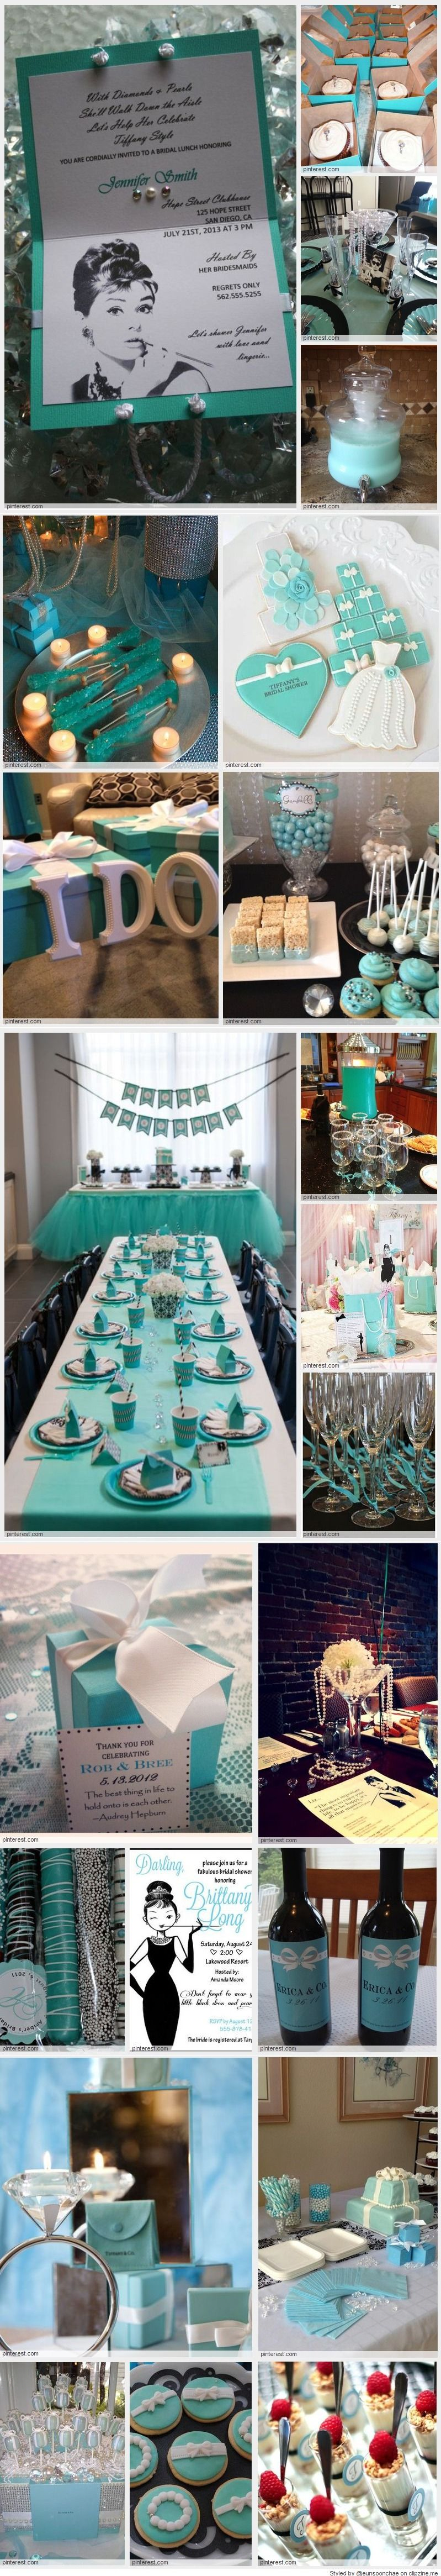 Breakfast at Tiffany's Bridal Shower! Would be the best thing ever